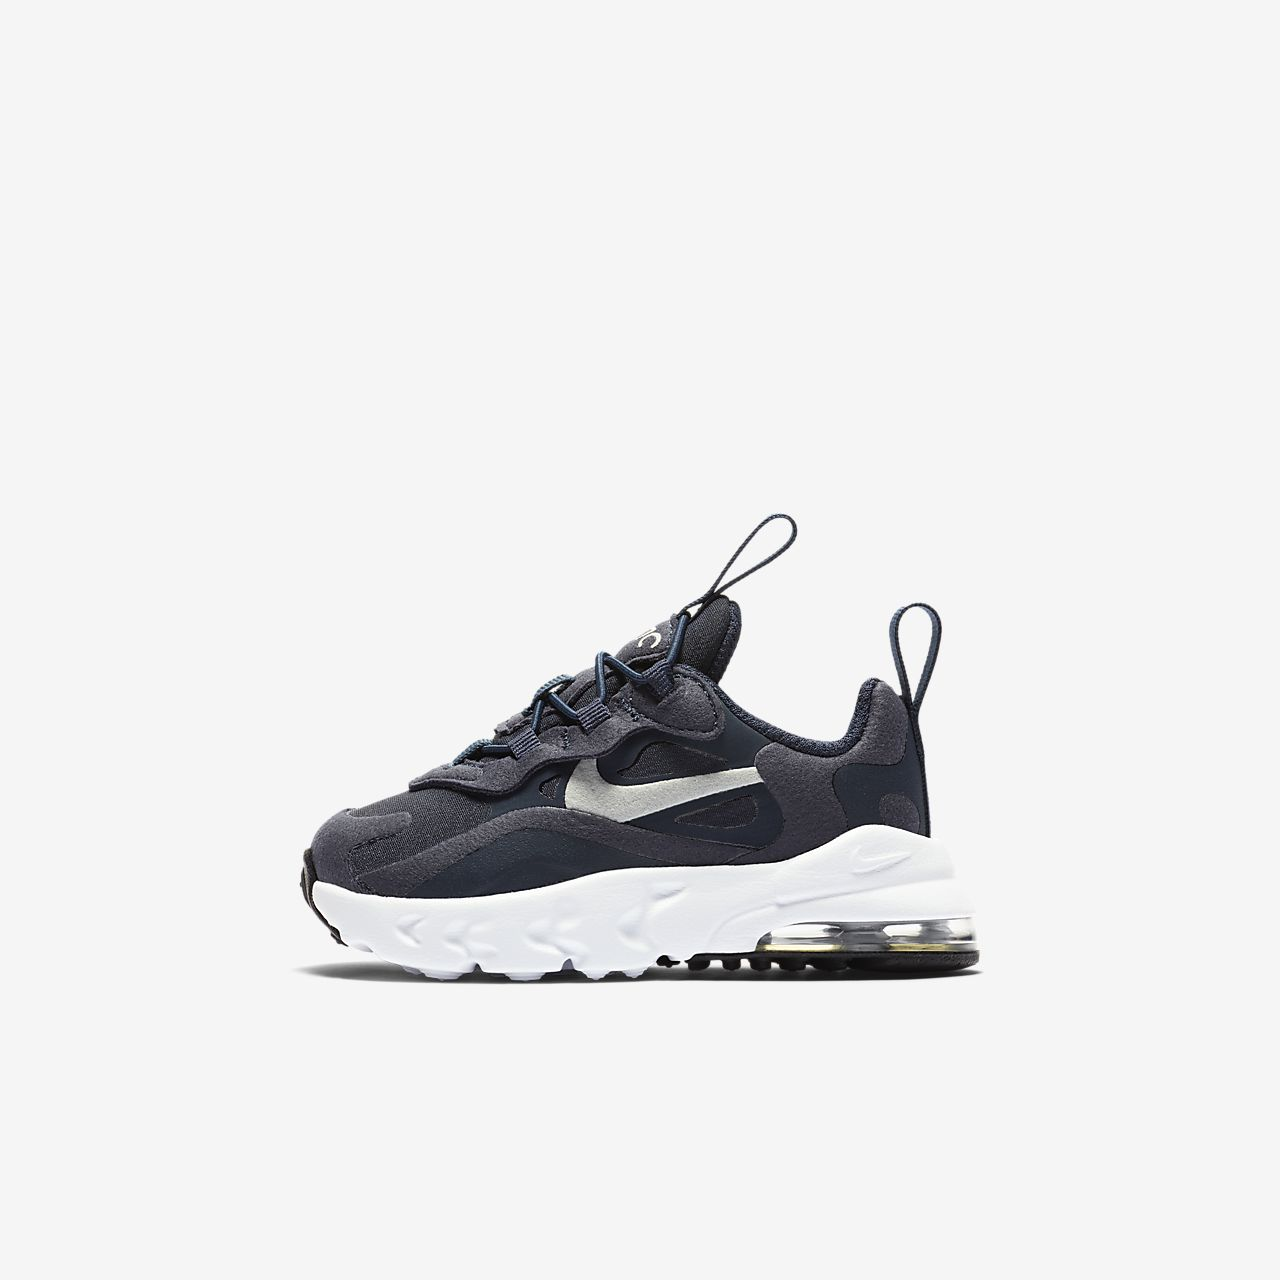 Sko Nike Air Max 270 RT för babysmå barn